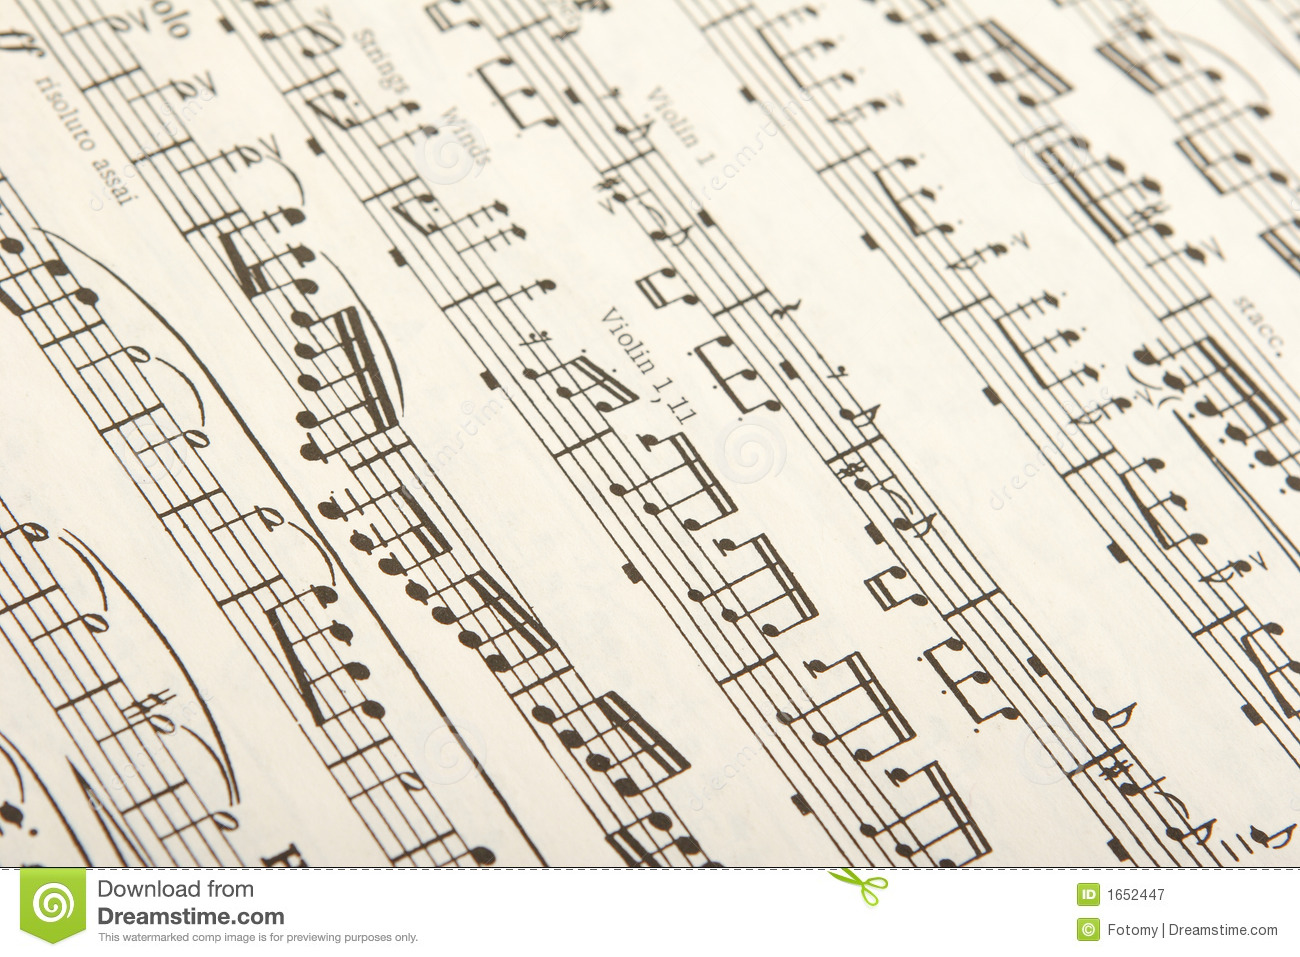 Free sheet music clipart clip freeuse Free sheet music clipart - ClipartFest clip freeuse